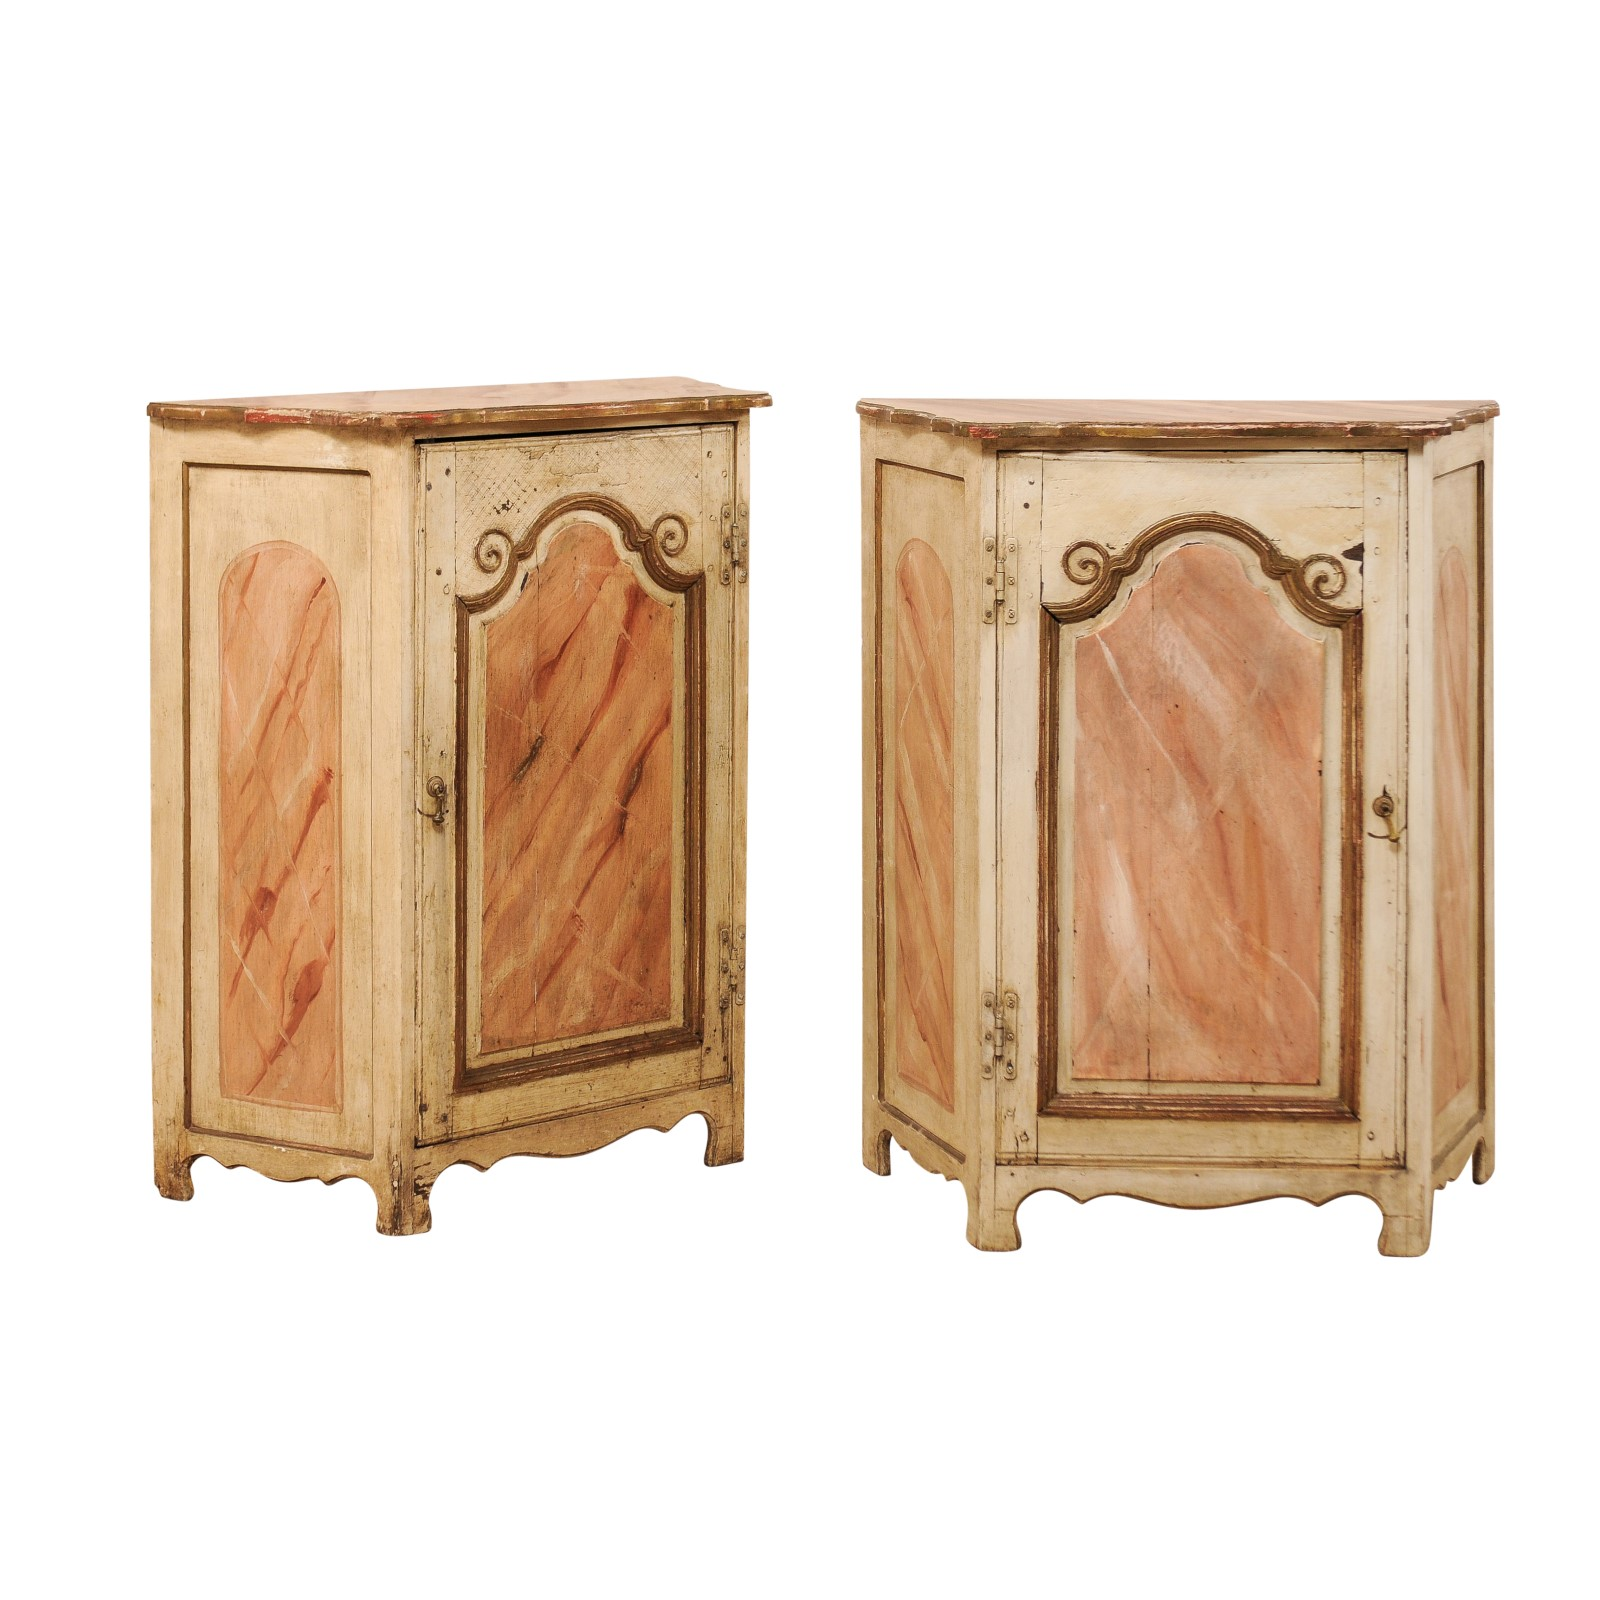 A Pair of Painted Wood Commodini